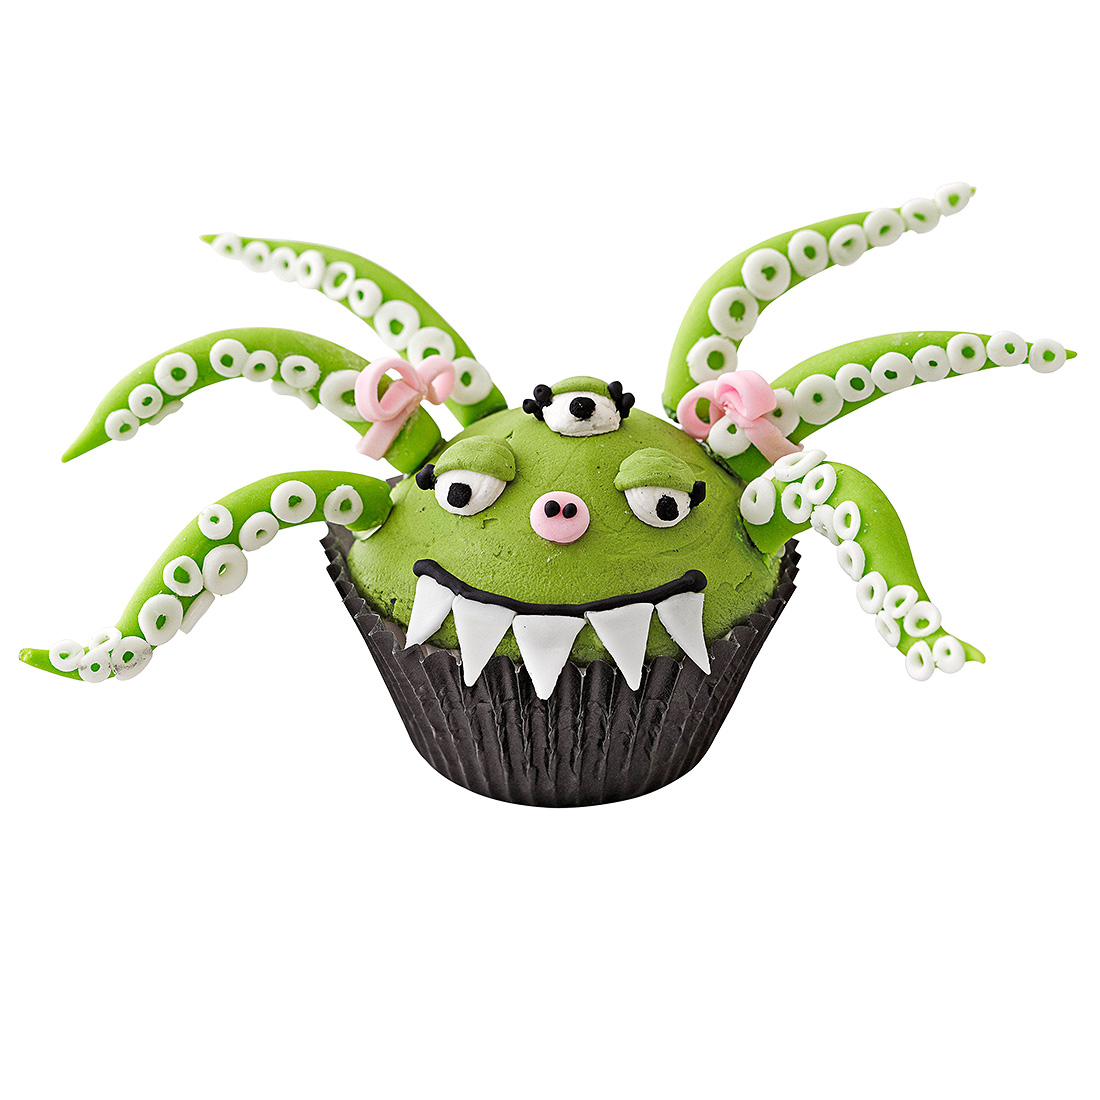 green monster with teeth and sucker arms cupcake